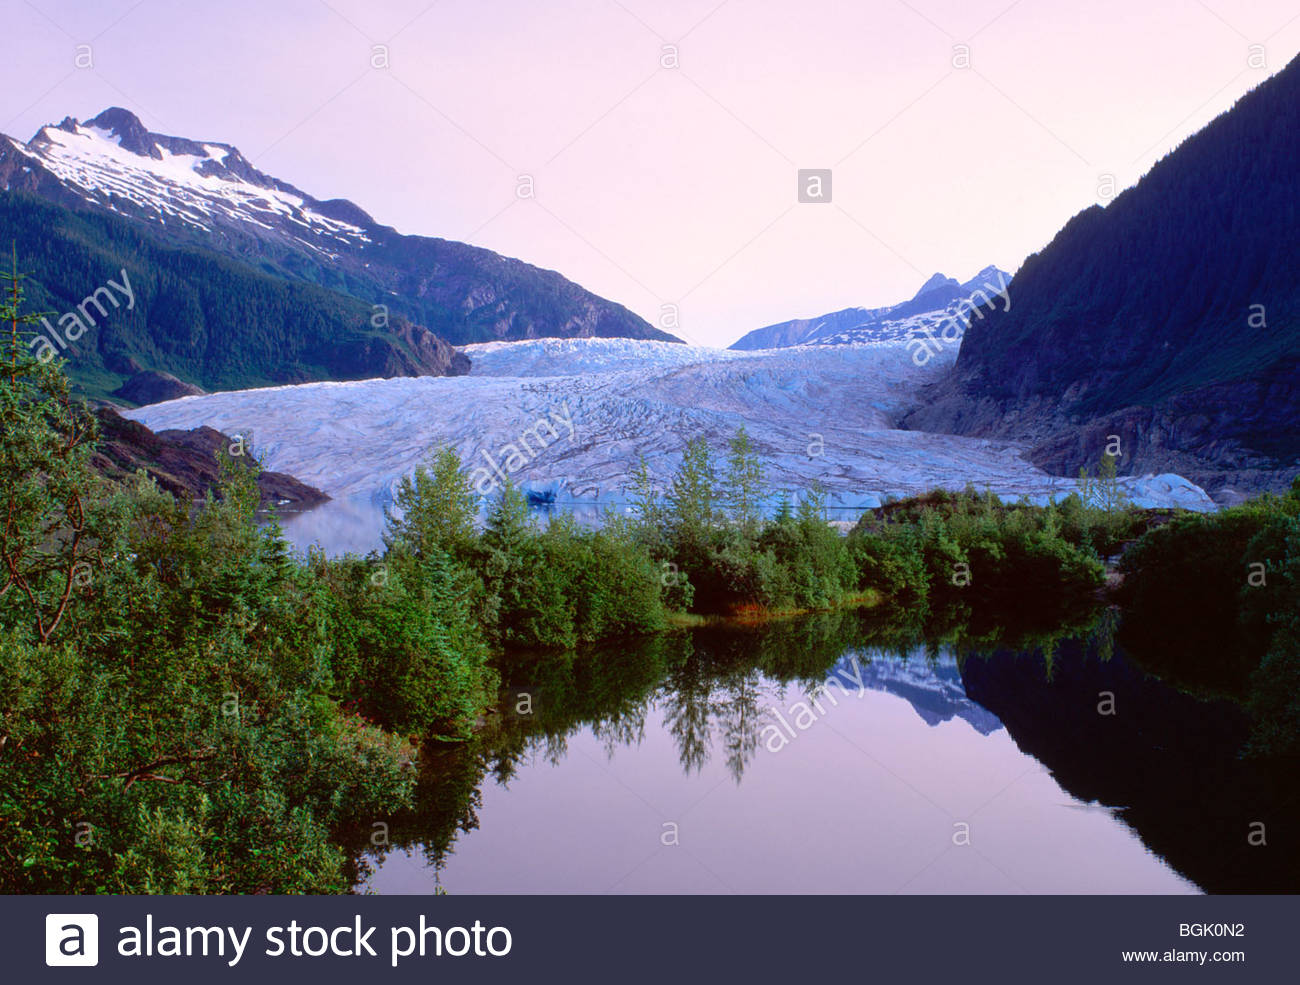 Mendenhall glacier and Mendenhall lake at sunrise in the Tongass National Forest - Stock Image